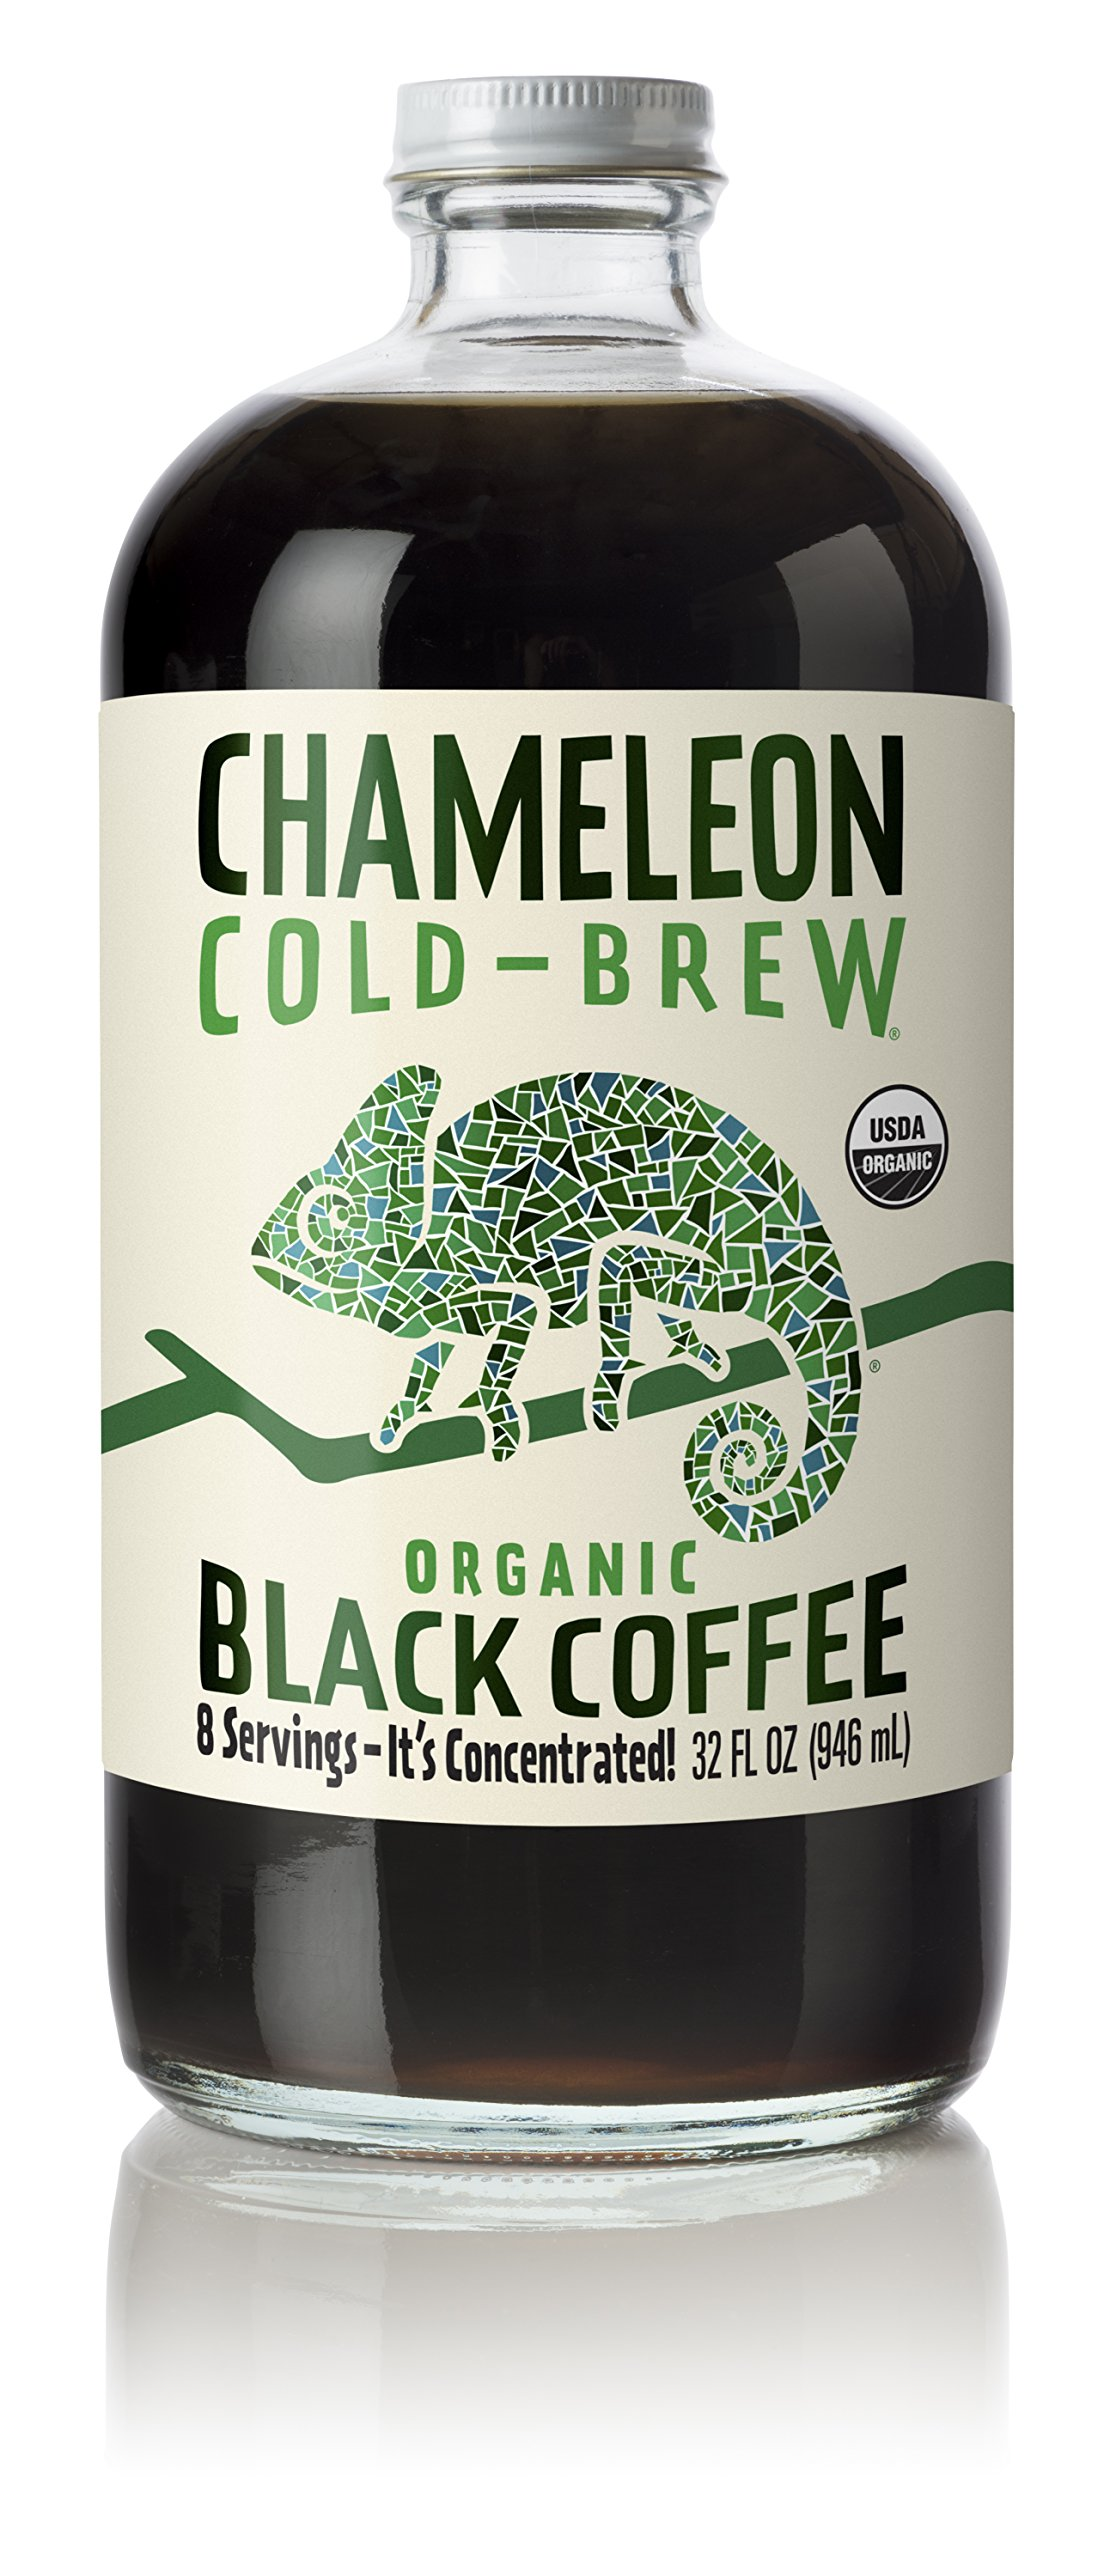 Chameleon Cold-Brew Black Coffee Concentrate 2 pack by Chameleon Cold Brew (Image #1)